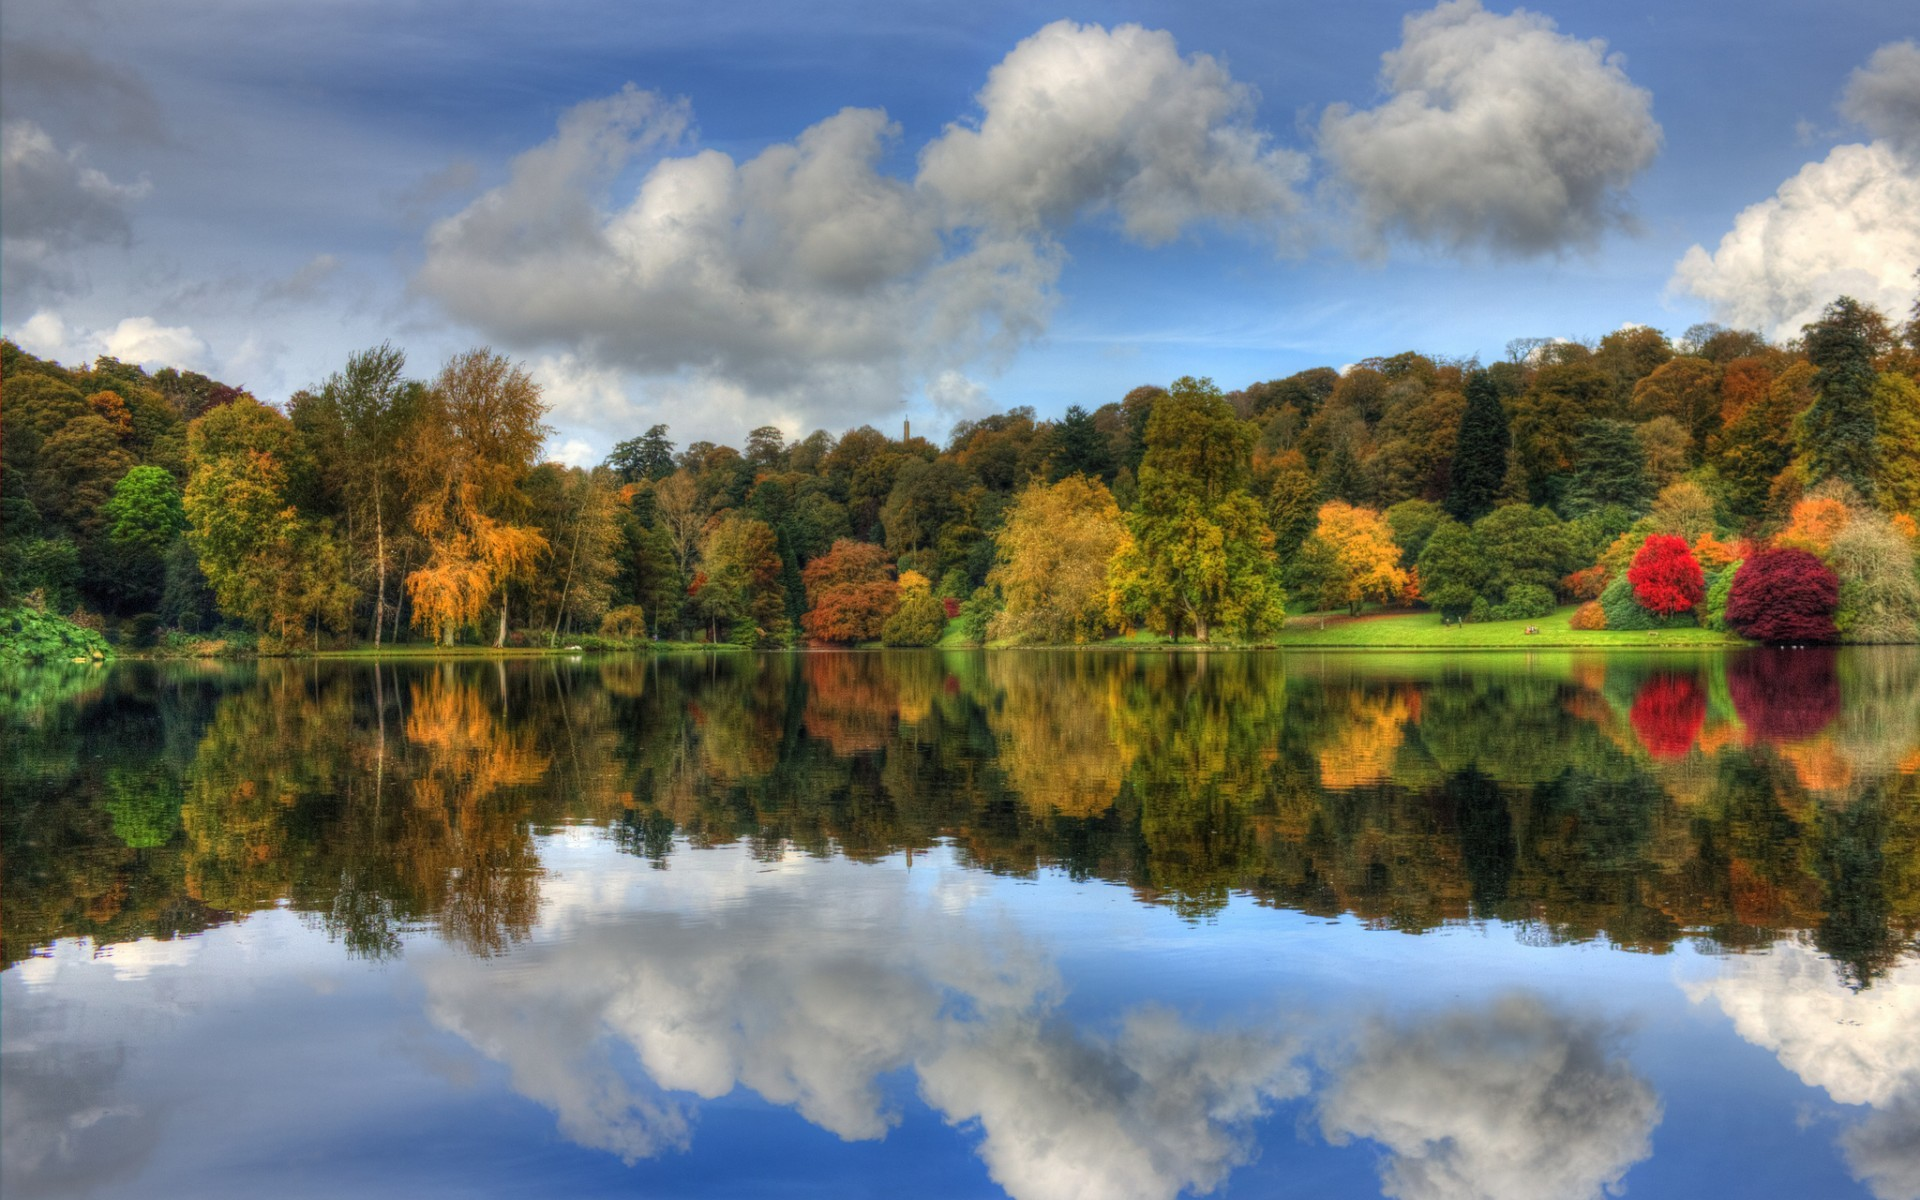 27939 download wallpaper Landscape, Rivers, Trees, Autumn, Clouds screensavers and pictures for free